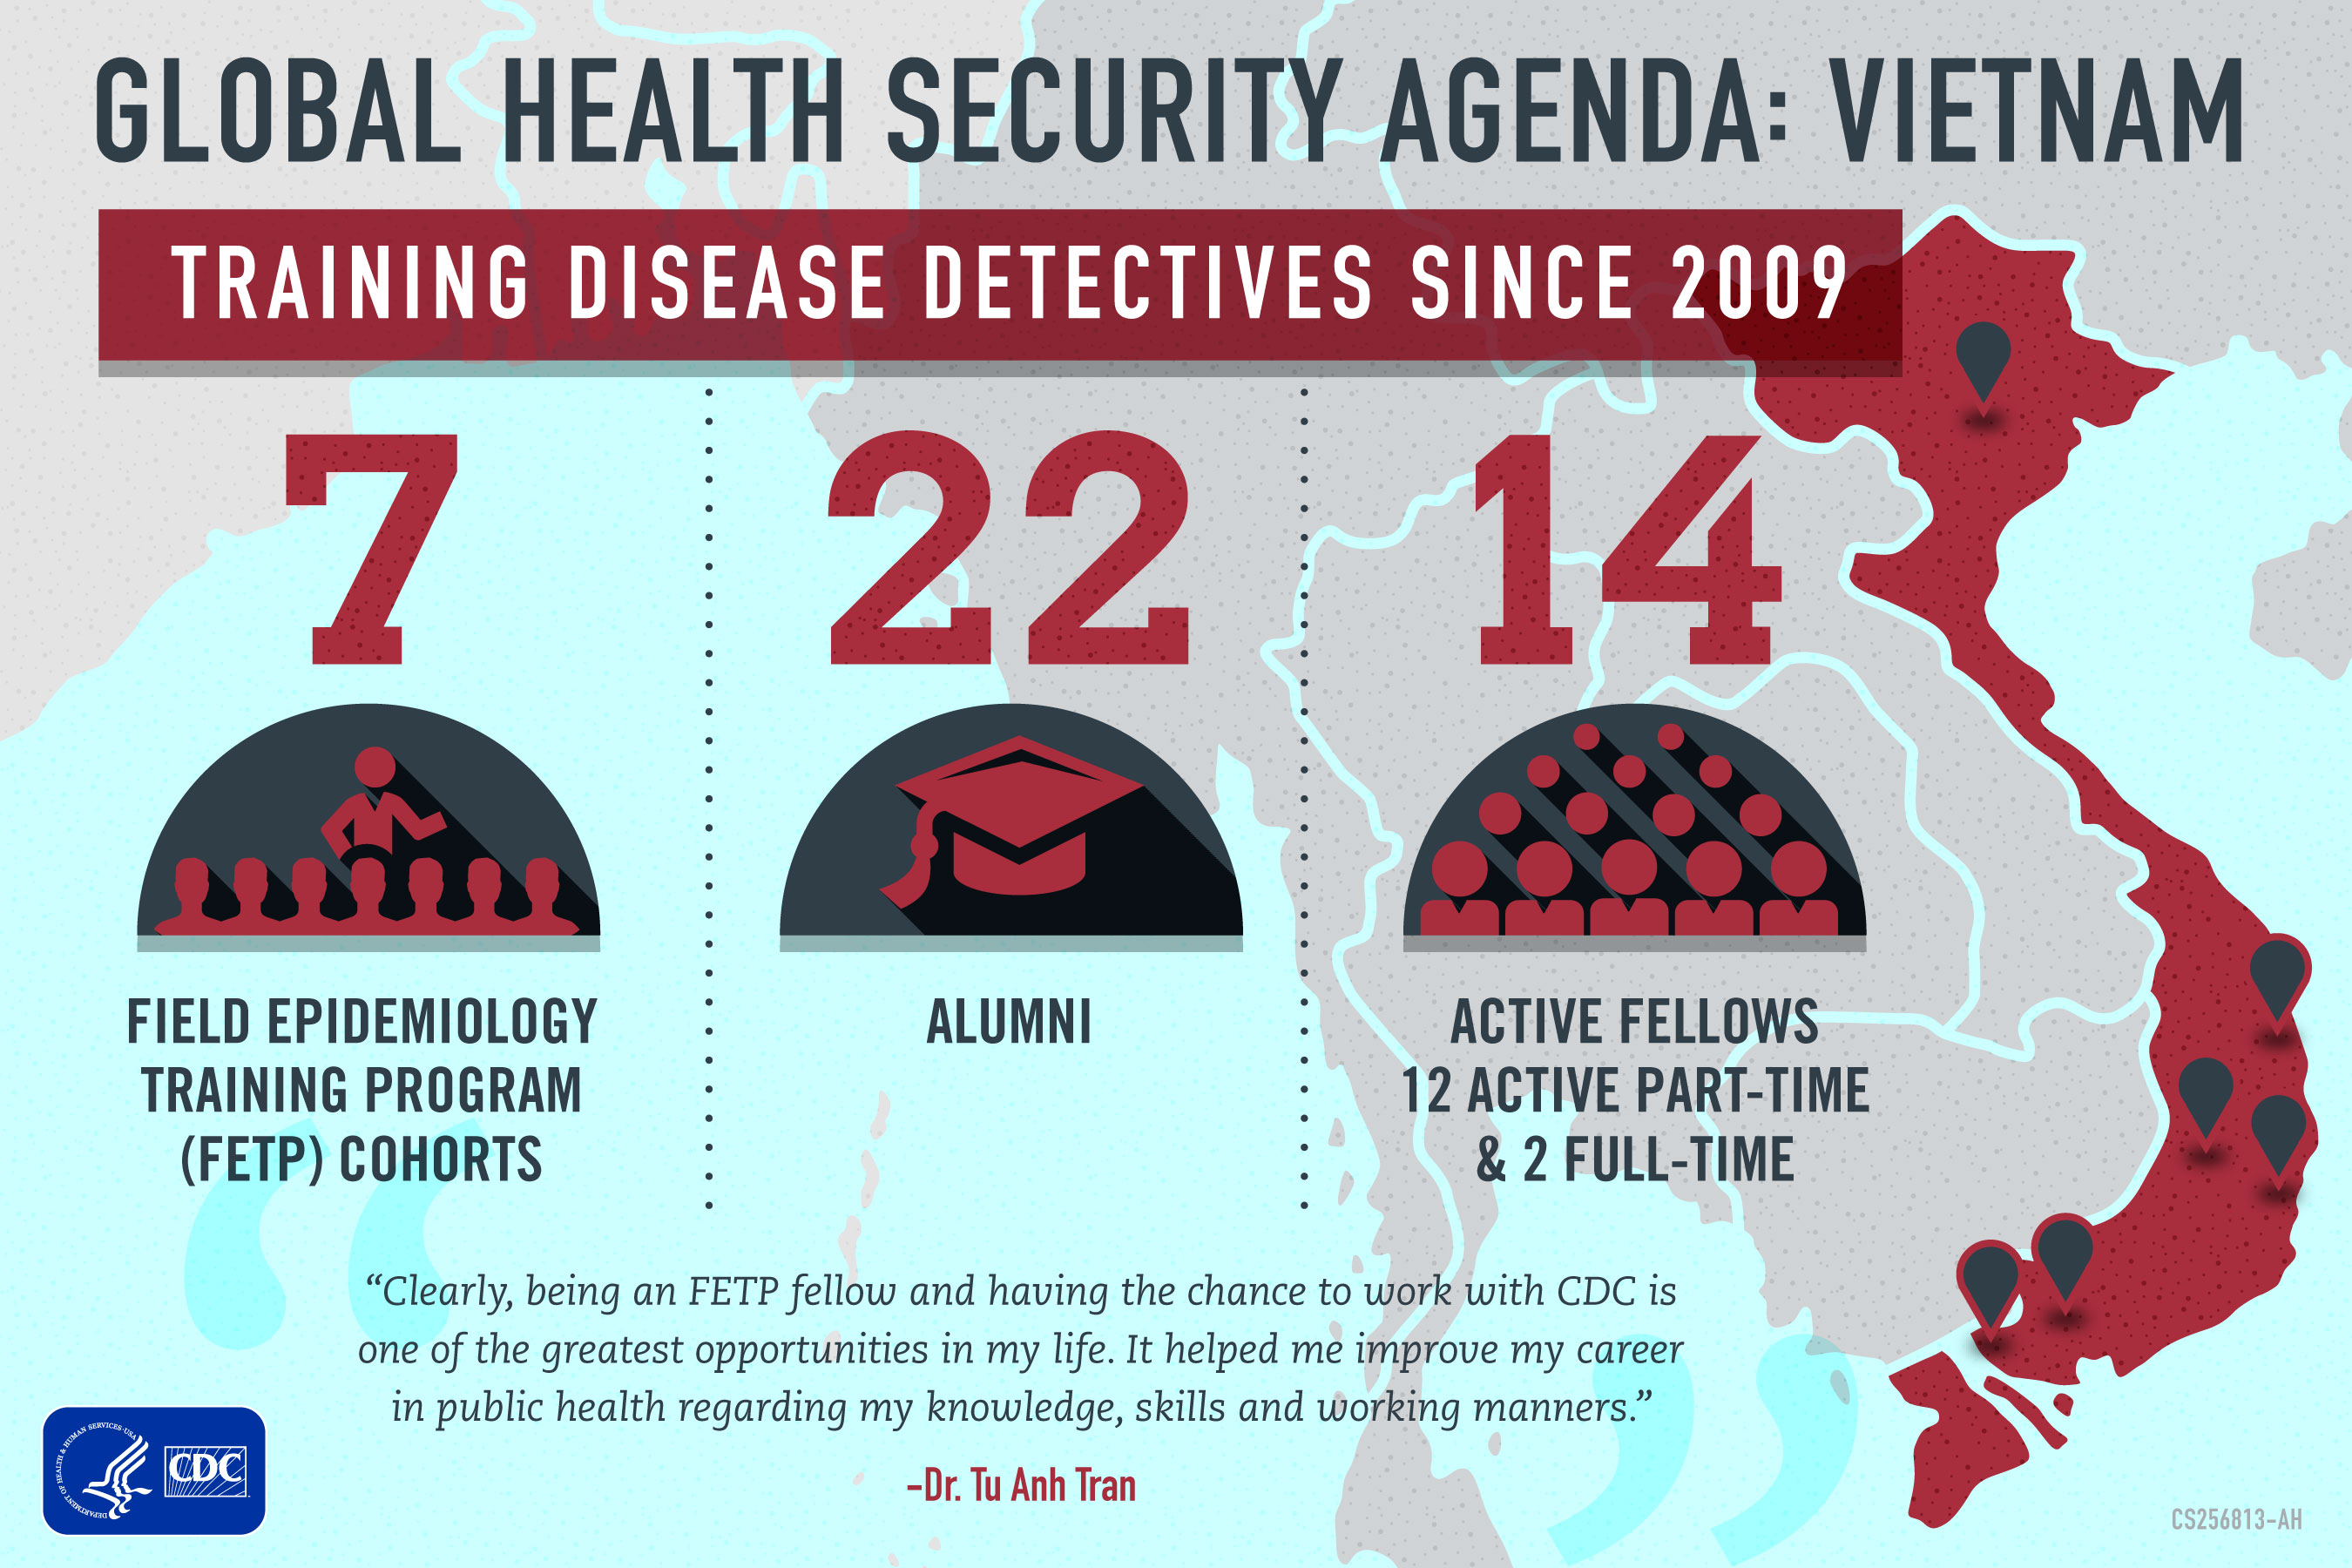 CDC Global Health - Vietnam - What CDC Is Doing